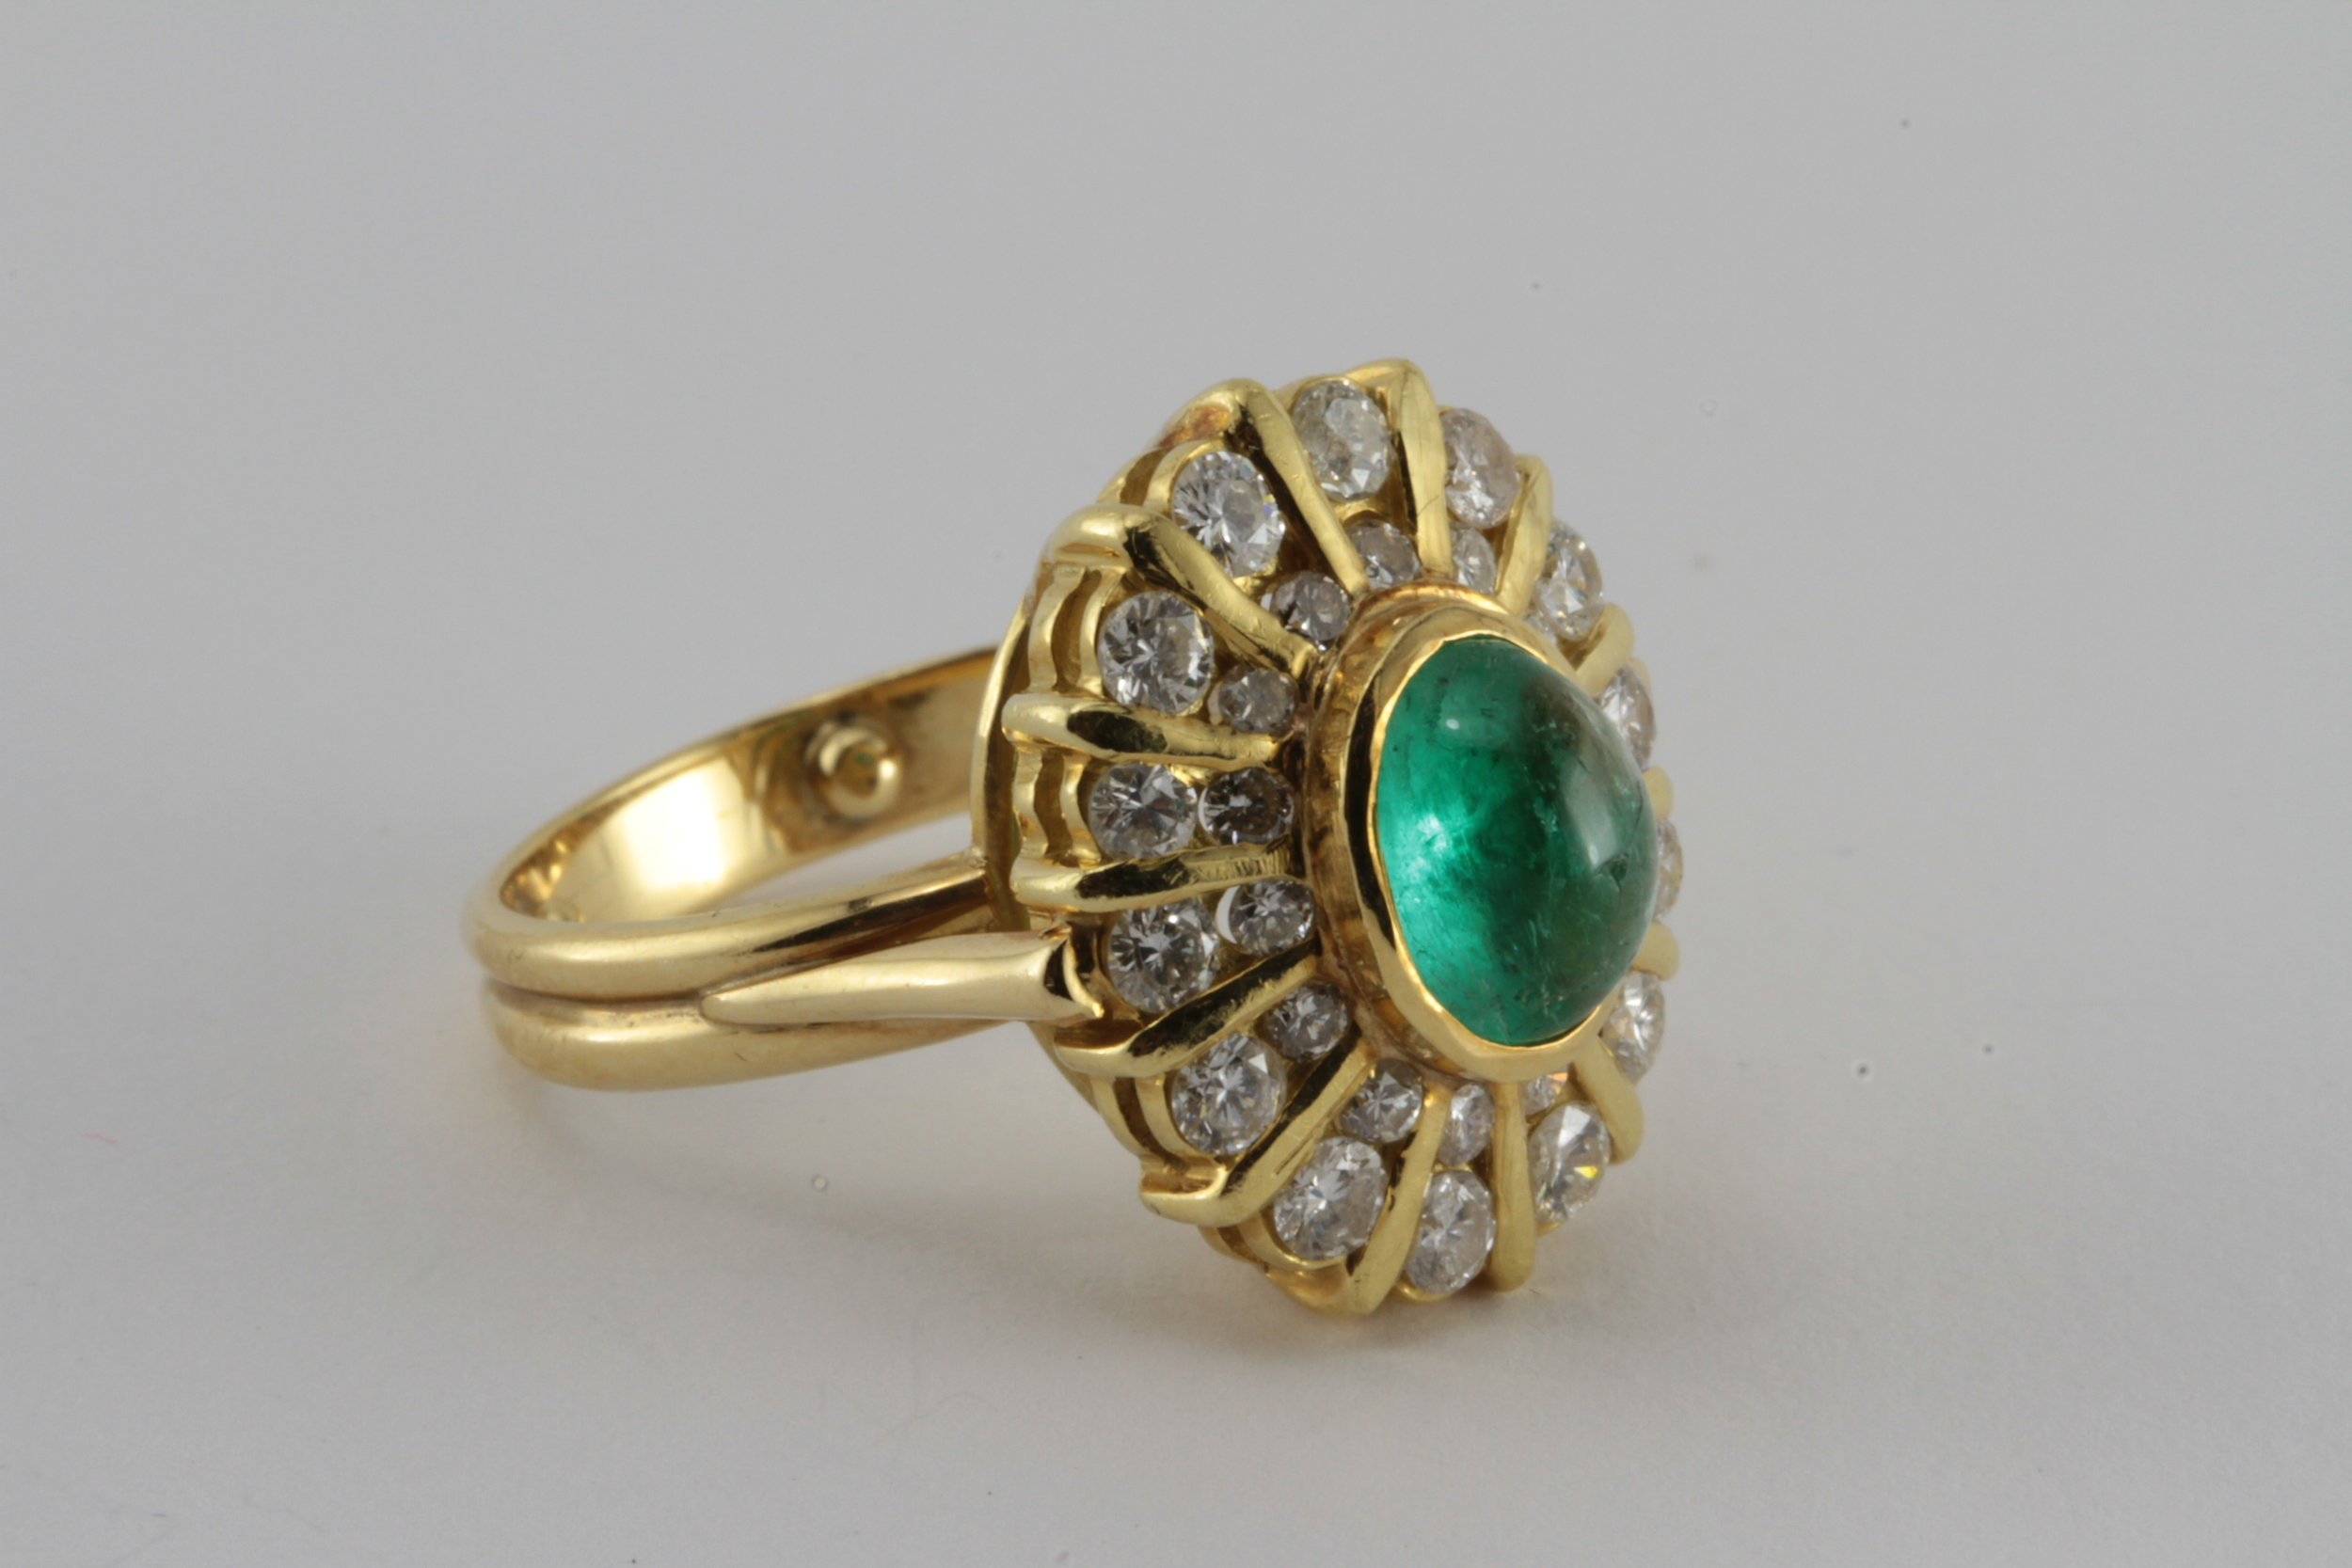 18k gold emerald and diamond ring - with over a carat of diamond